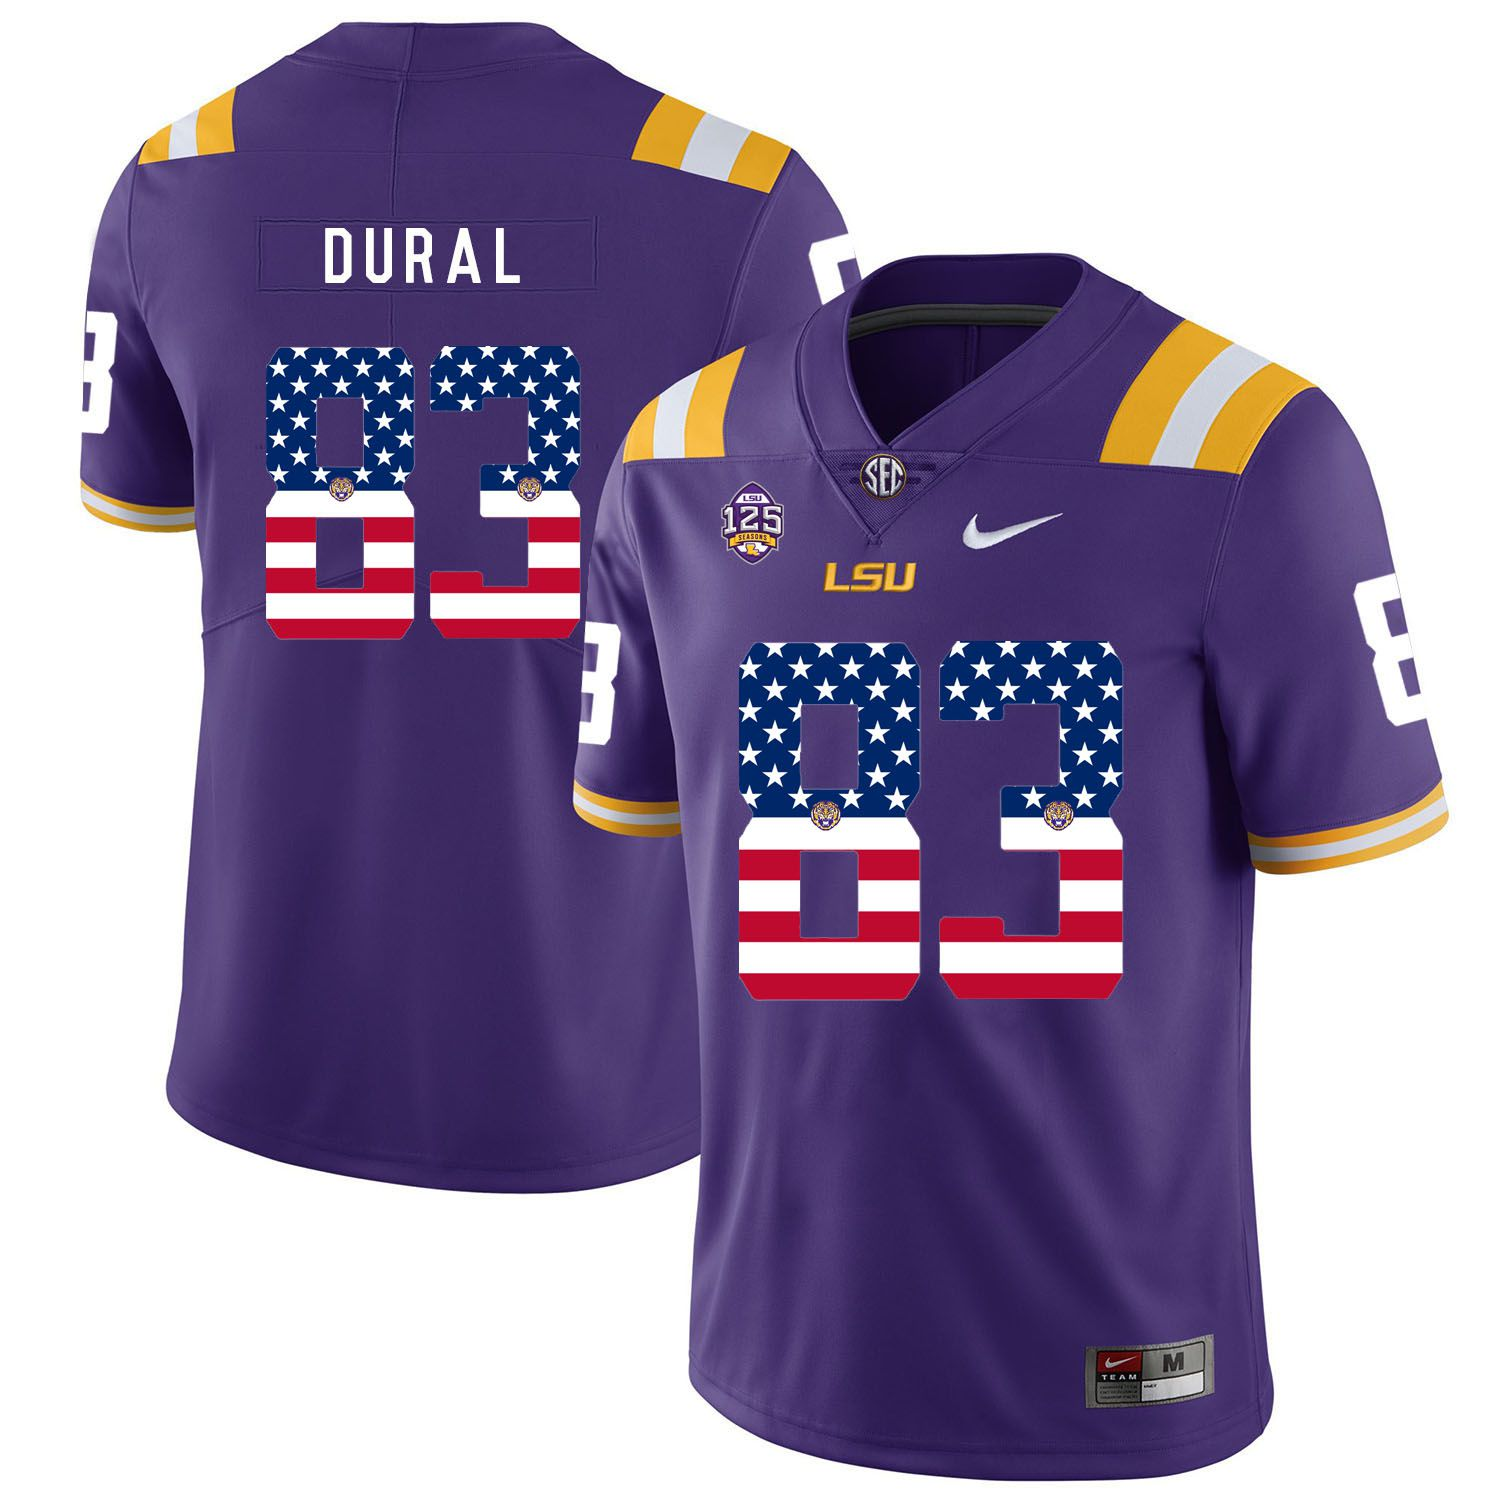 Men LSU Tigers 83 Dural Purple Flag Customized NCAA Jerseys